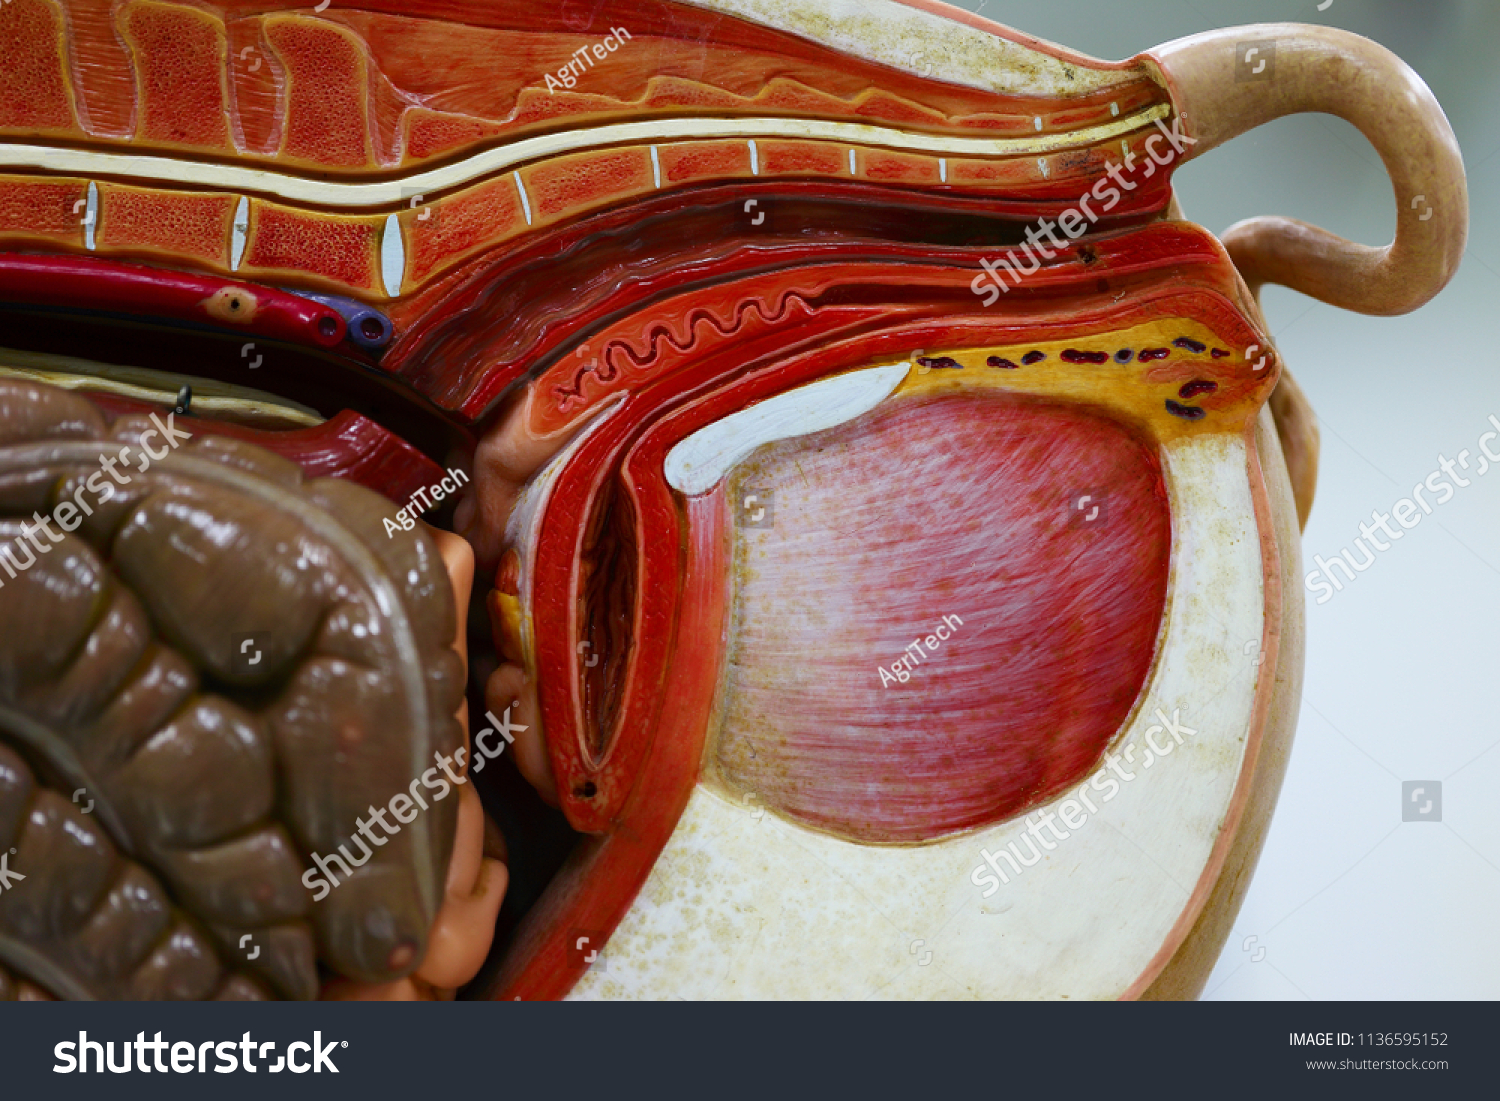 Internal Organs Pig Pig Anatomy Model Stock Photo Edit Now